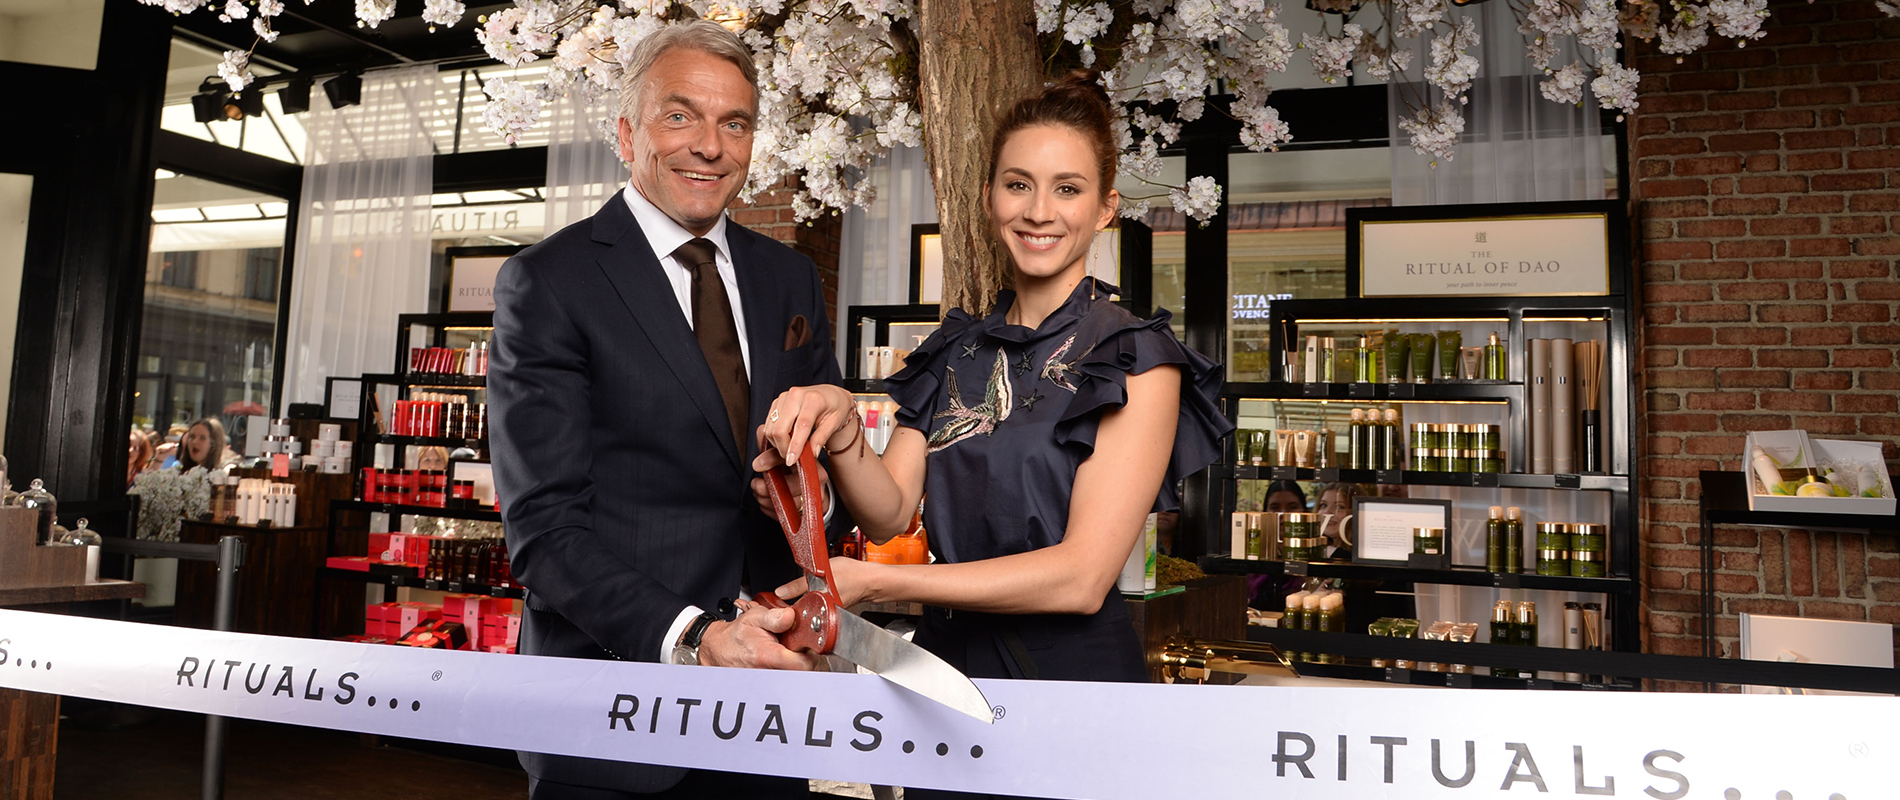 Troian Bellisario and Raymond Cloosterman, CEO Rituals Cosmetics, cutting the ribbon at Rituals Fifth Avenue Store in NYC